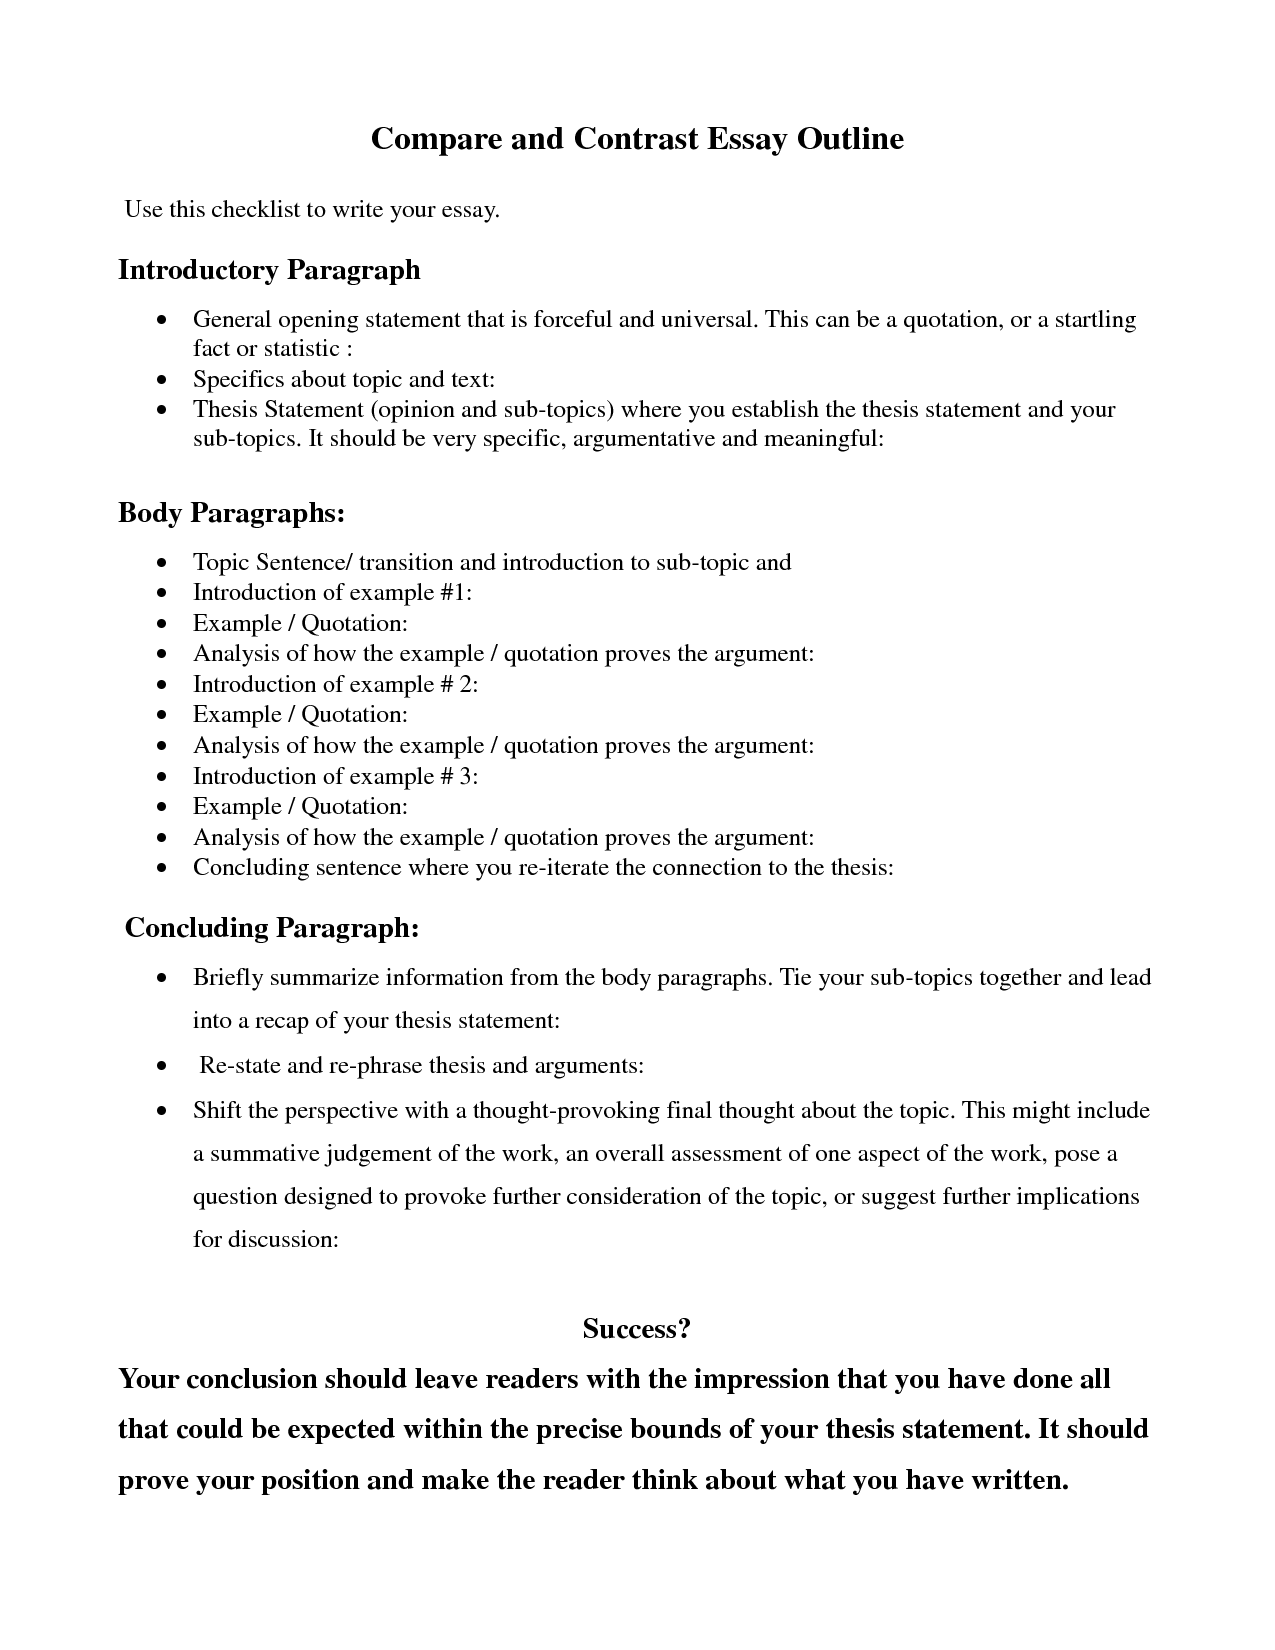 Essay About Yourself Examples  Persuasive Essays On Gun Control also Essay On Propaganda Sample Introduction Paragraph Comparison Essay  How To  Legalization Of Medical Marijuana Essay